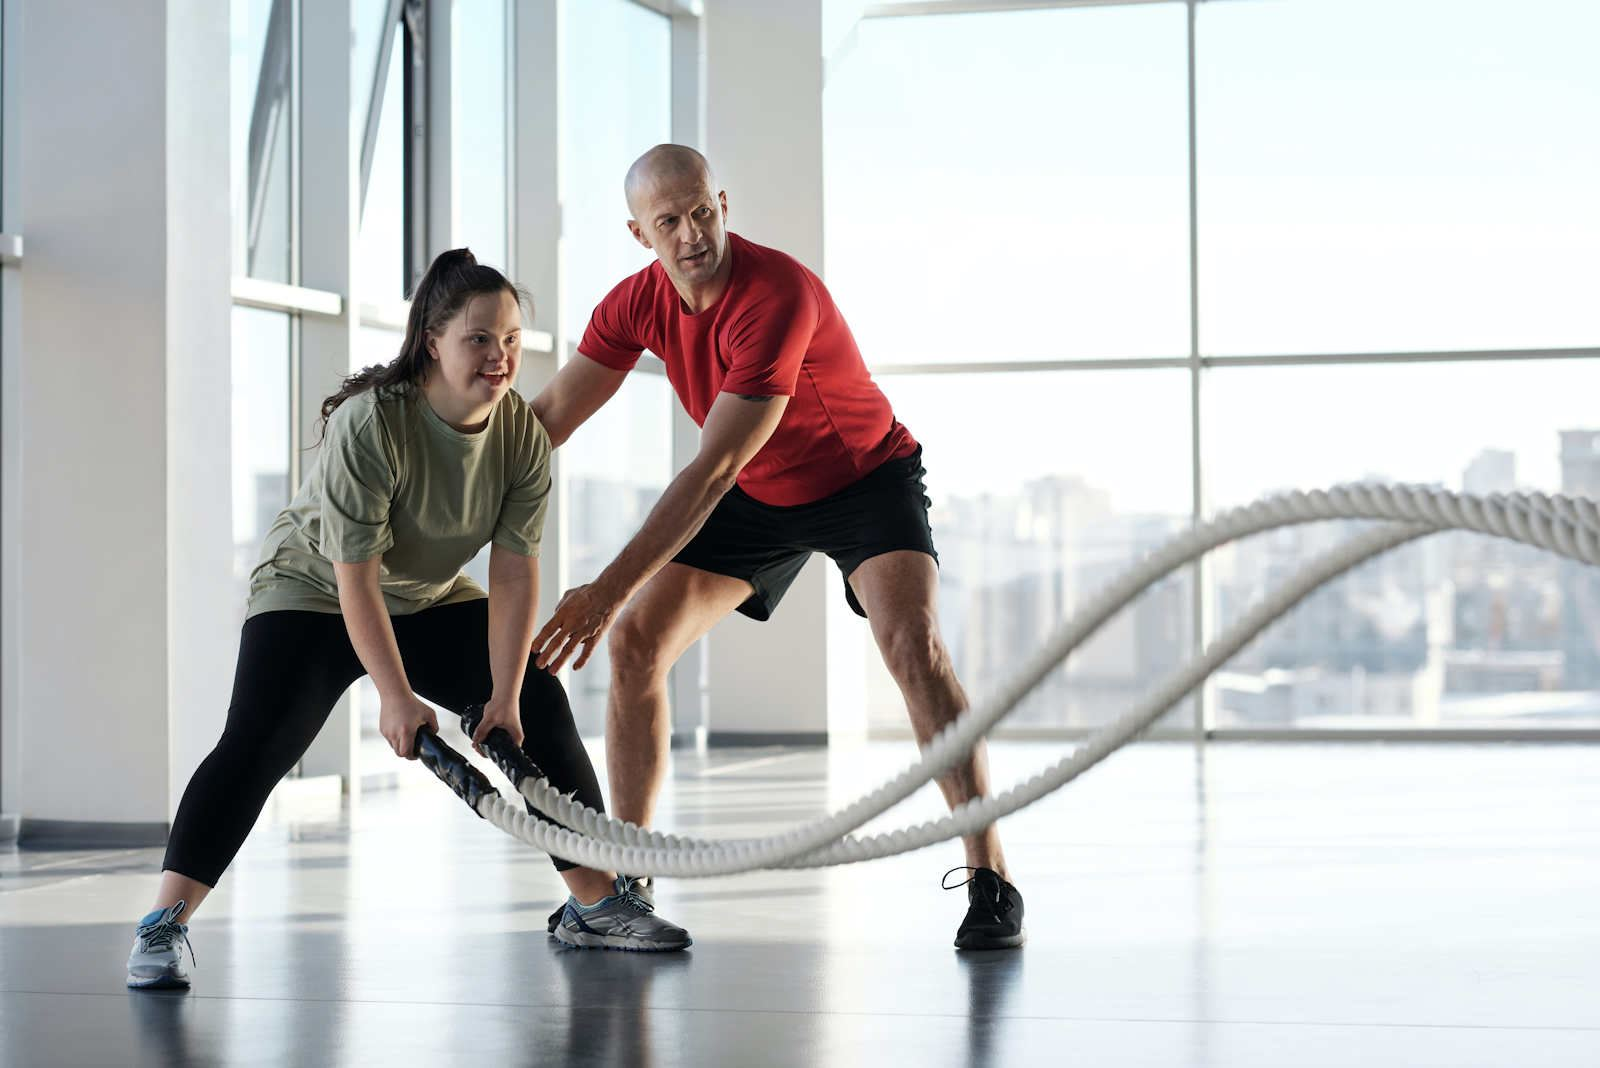 Surge Fitness of Perth